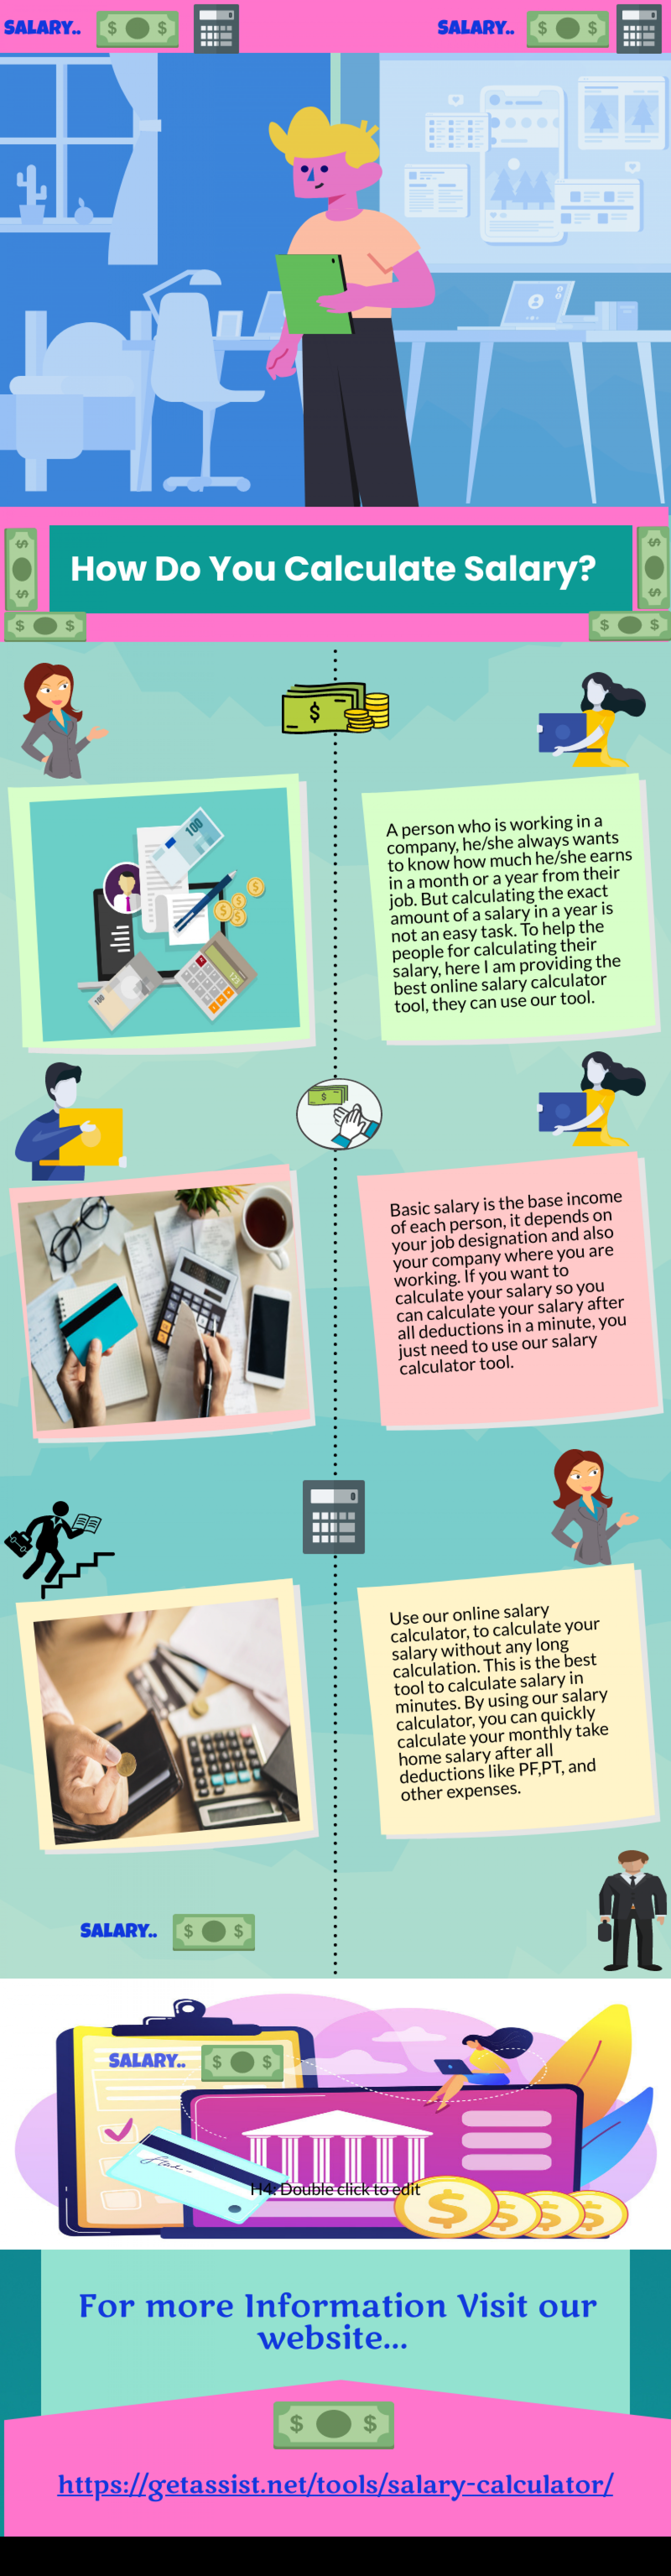 How Do I Calculate Salary? Infographic